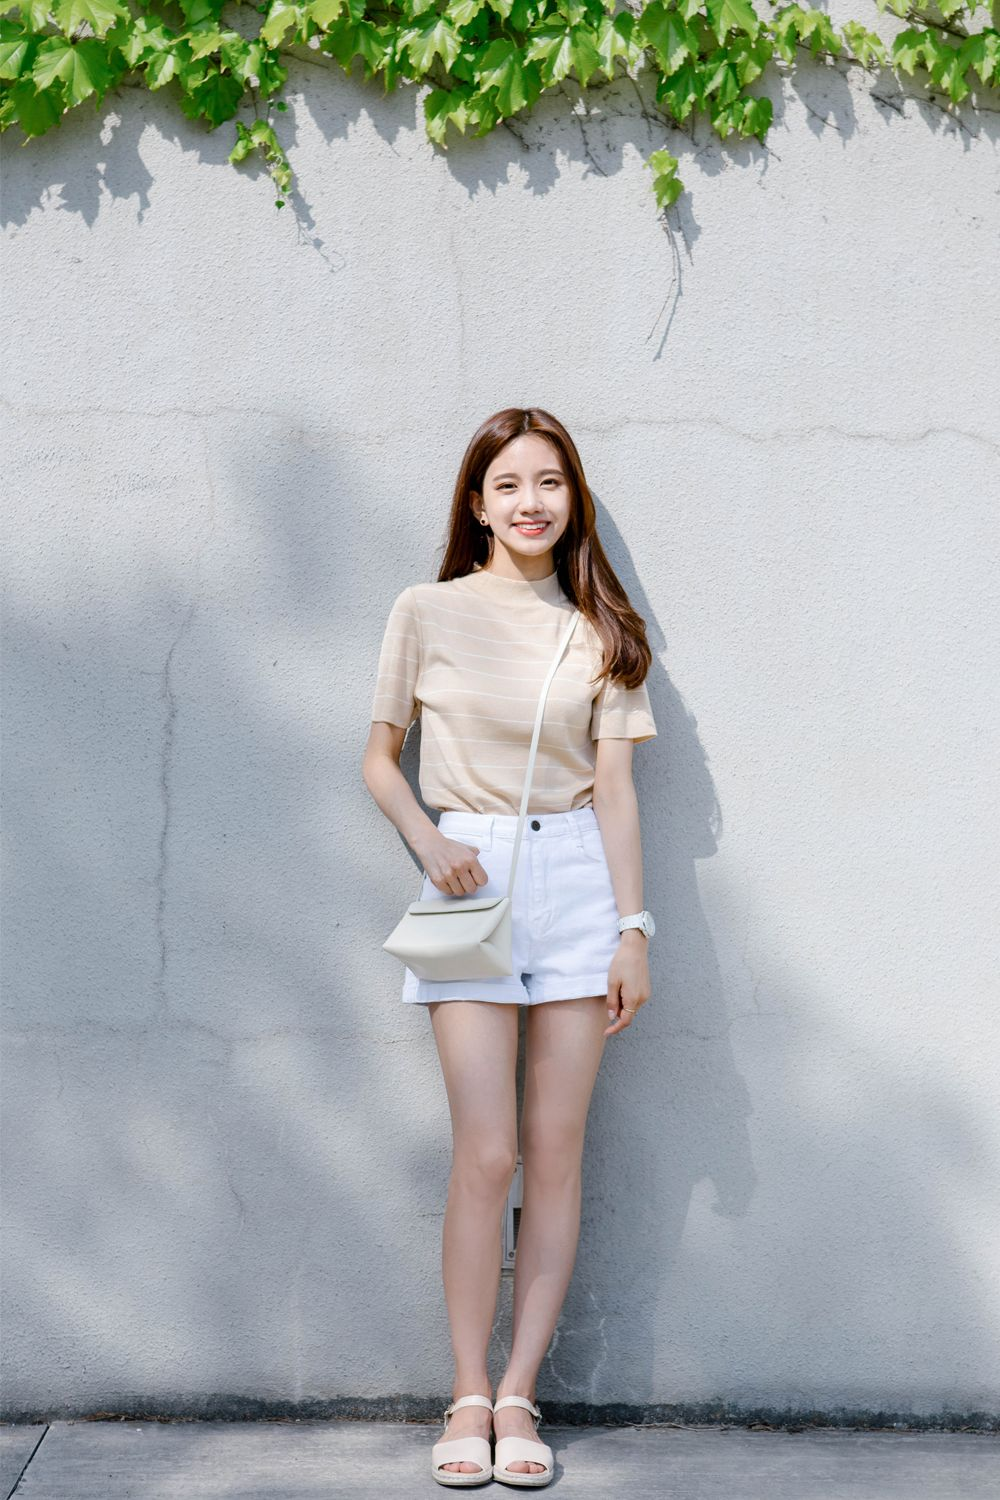 Korean Fashion Summer Look Ootd Kfashion Pinterest Korean Fashion Summer Korean